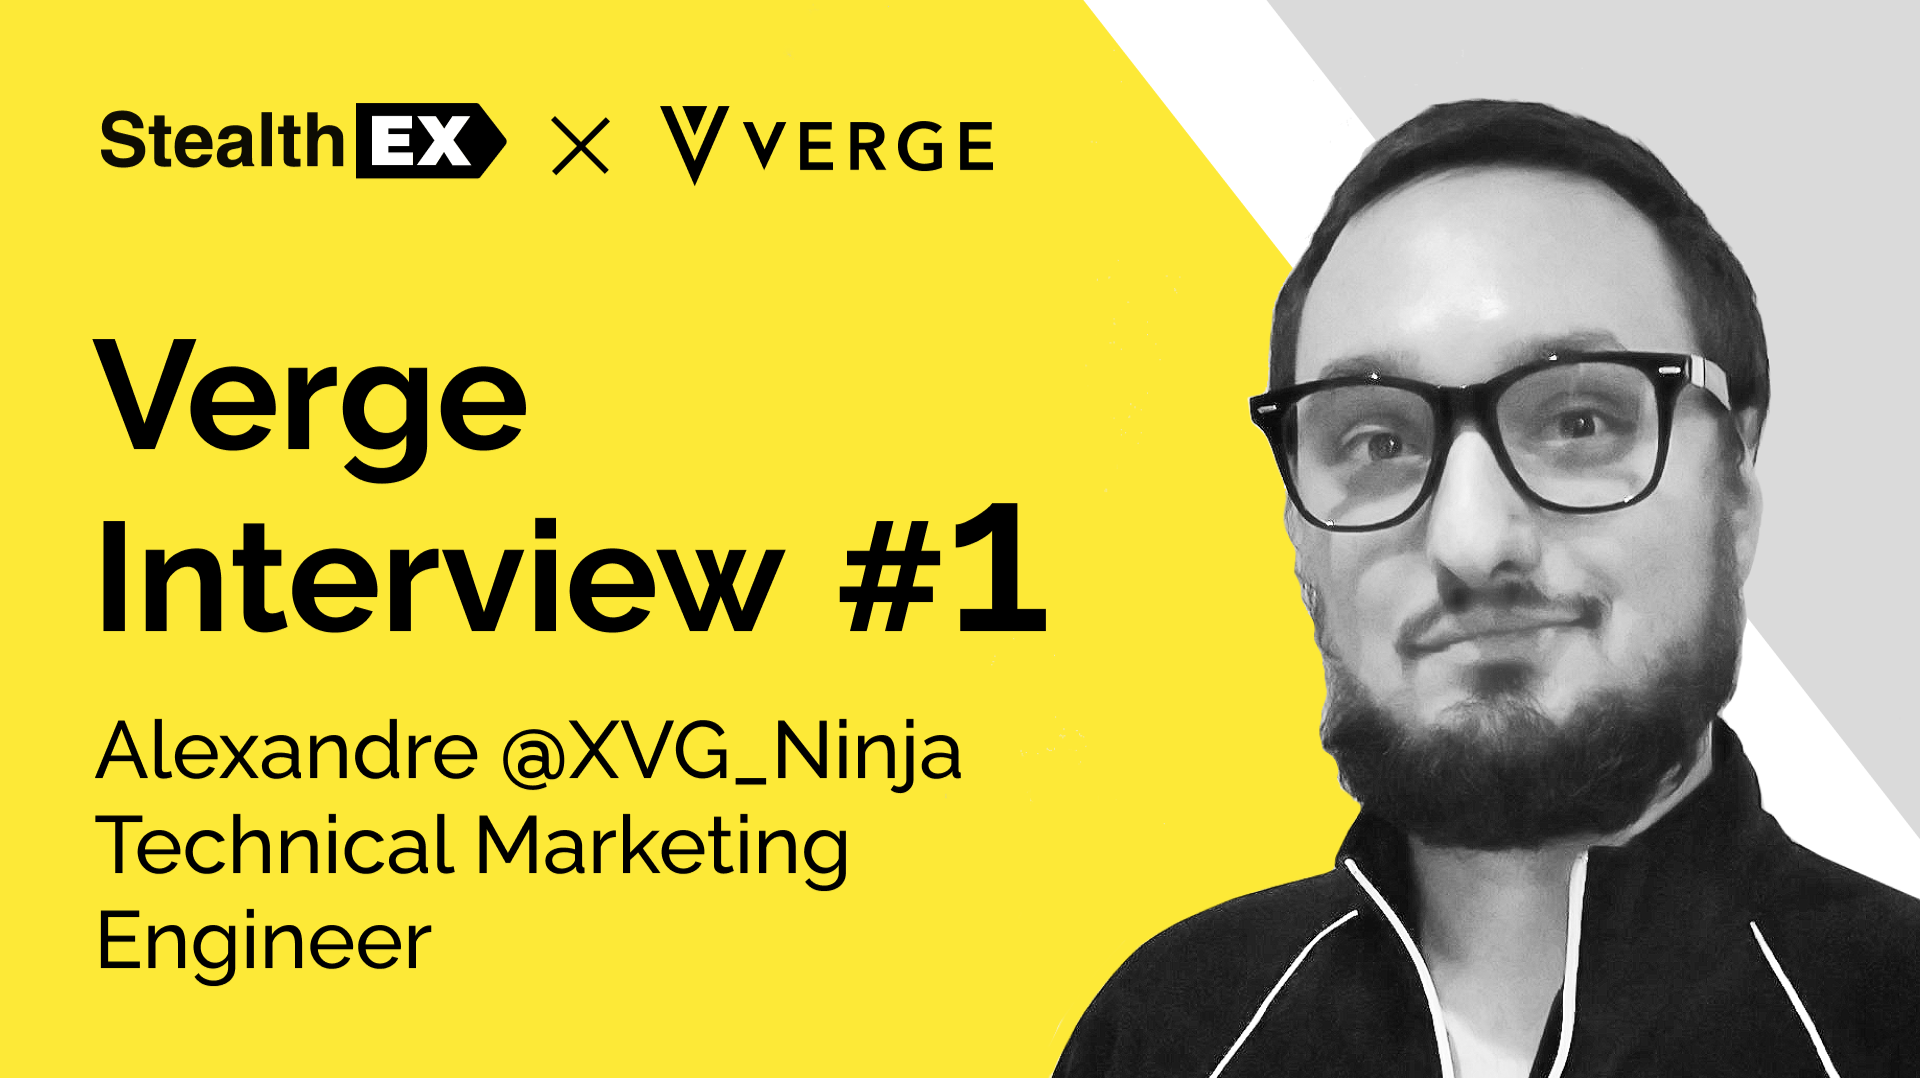 StealthEX Interview With Alexandre @XVG_Ninja, The Verge Technical Marketing Engineer